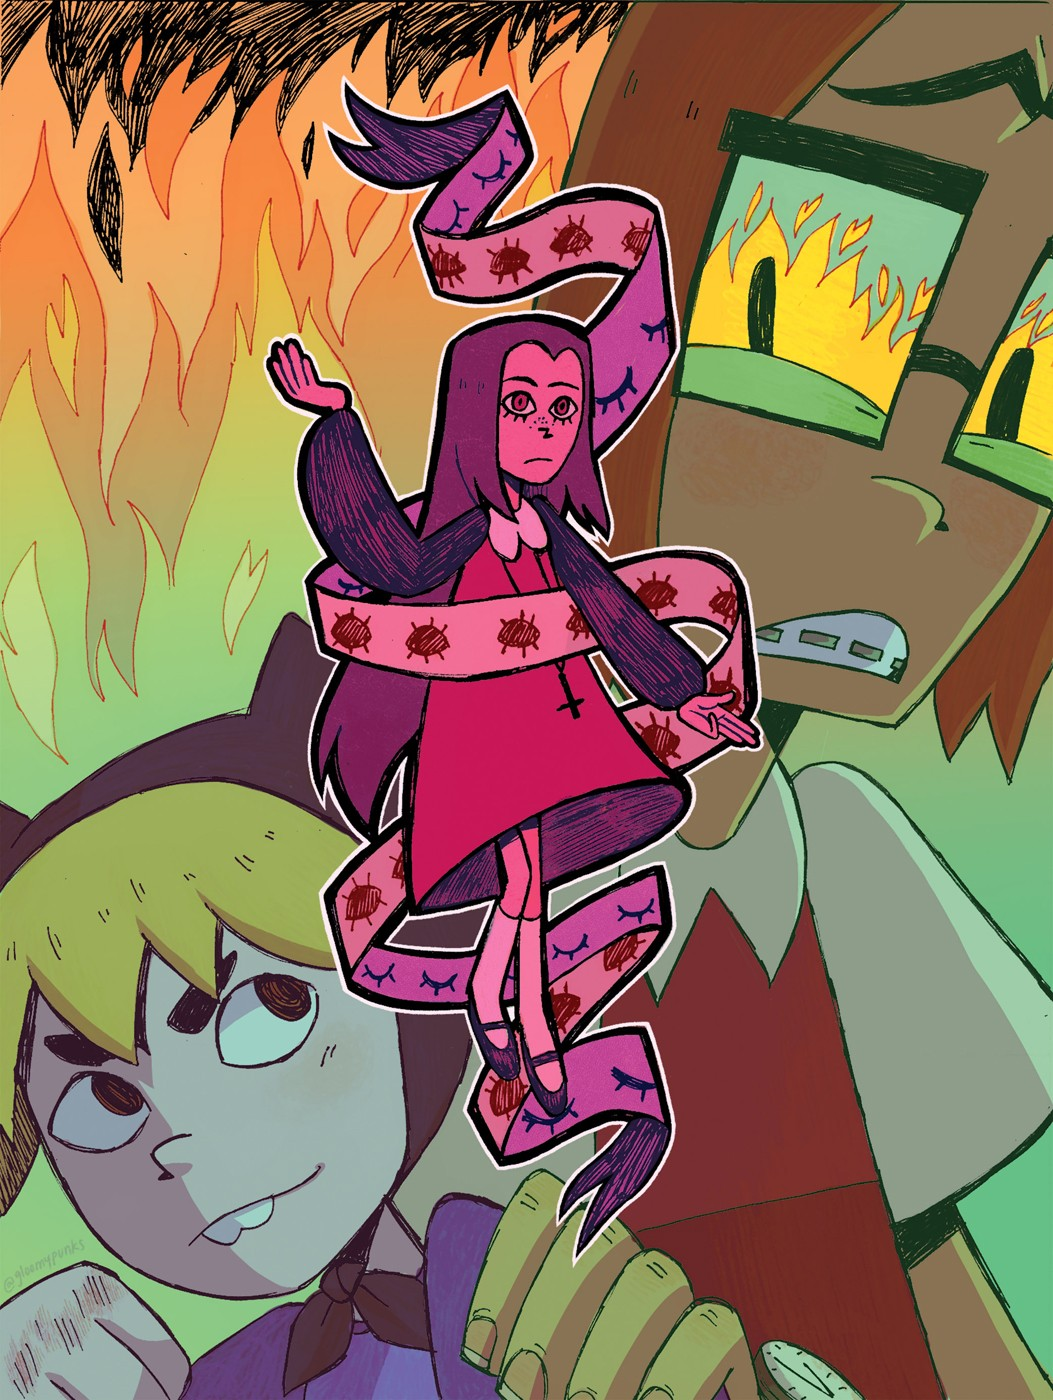 2 male characters in the background with fire, a girl in the front surrounded by ribbon with eyeballs on it.